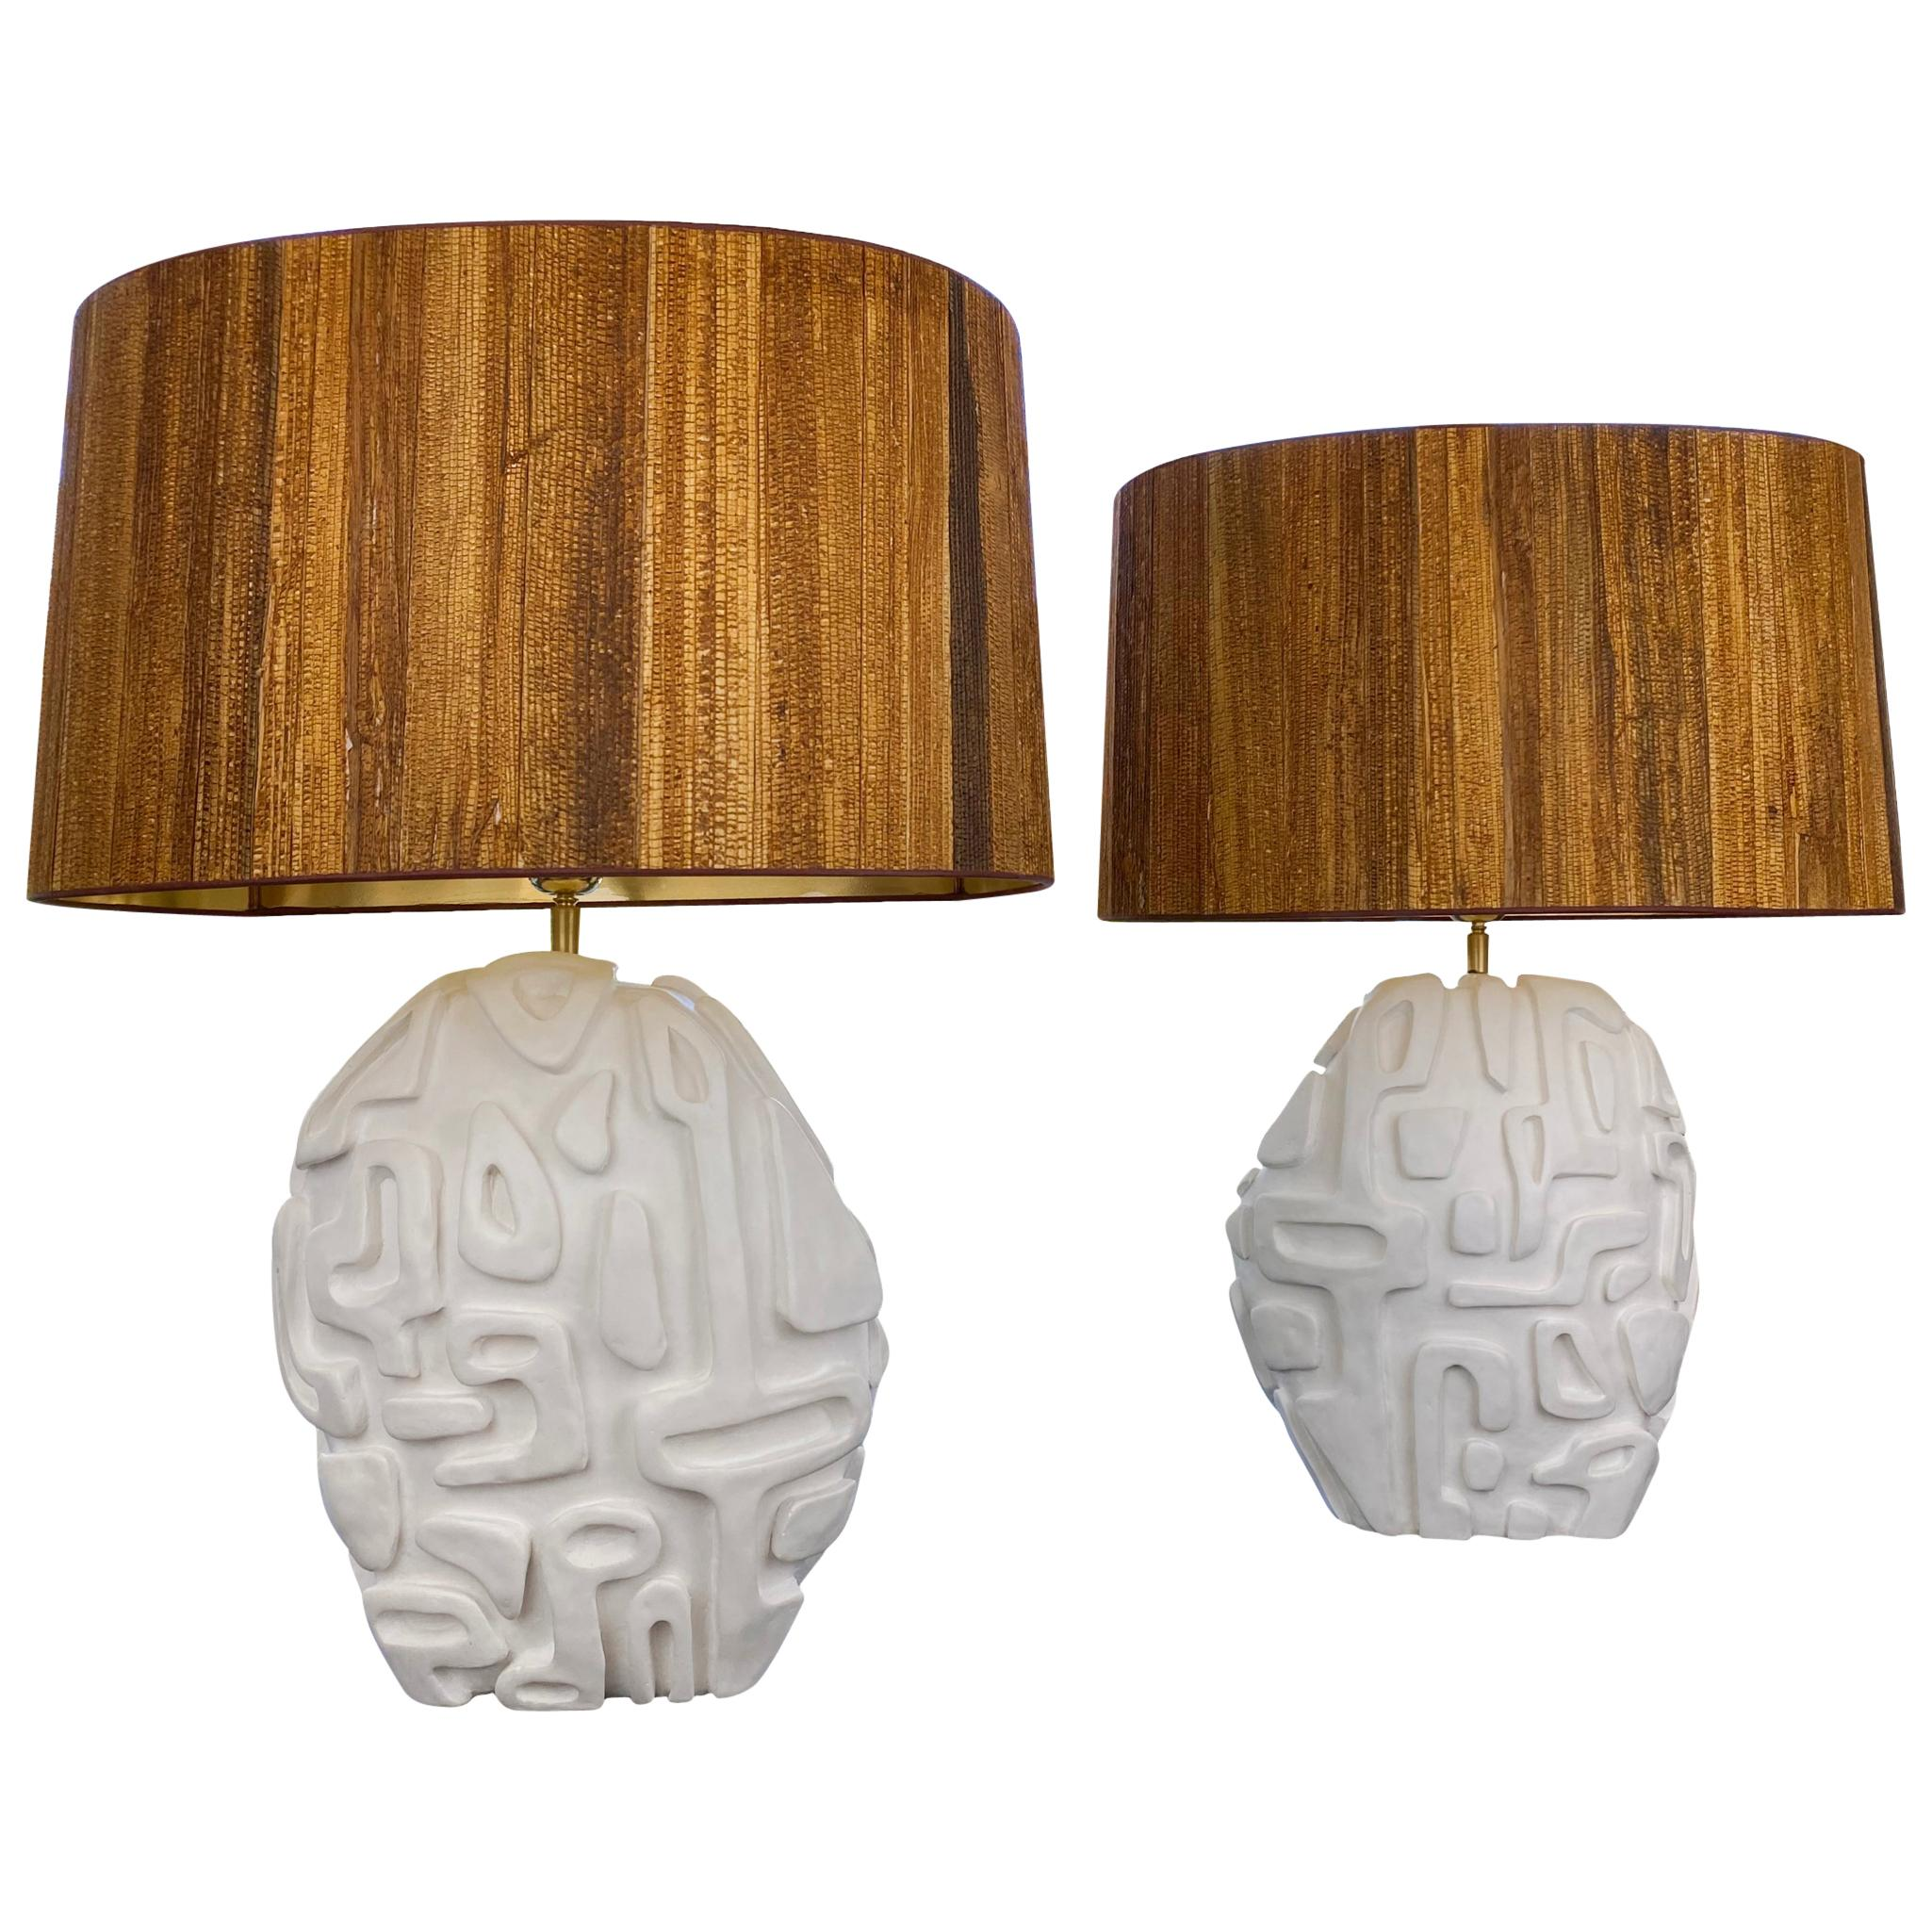 Pair of Table Lamps, circa 2020, France